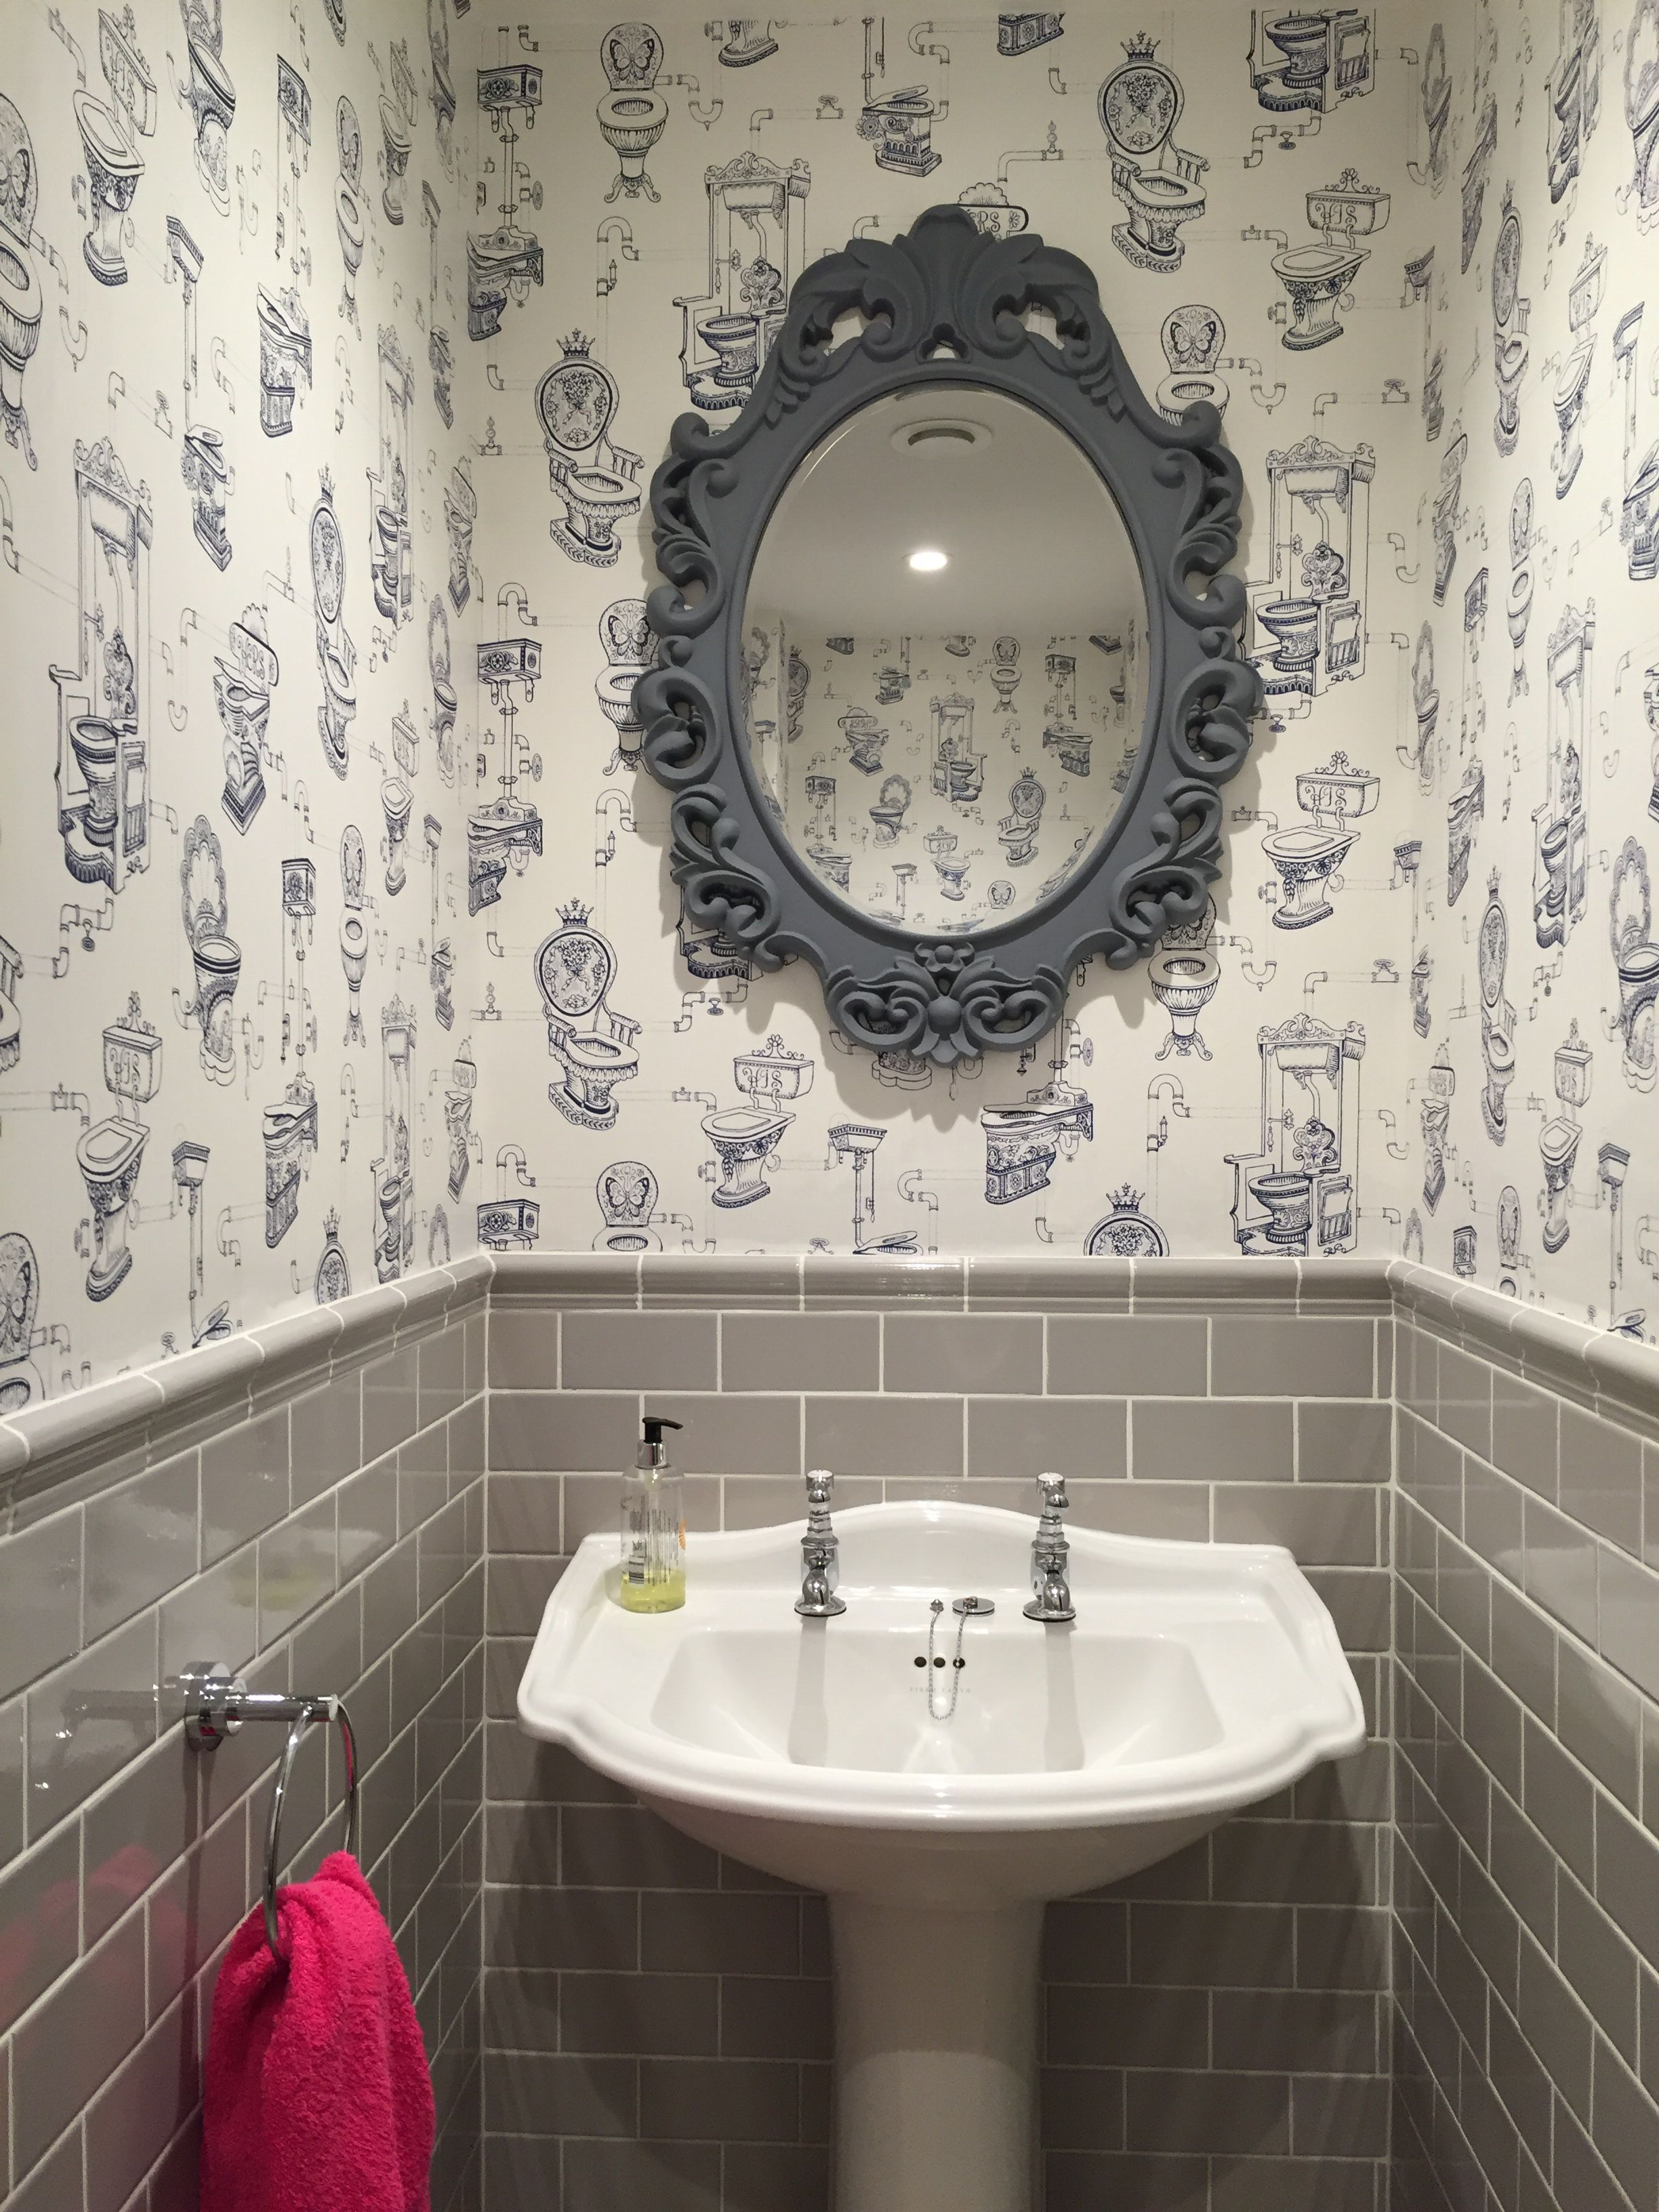 Our Downstairs Toilet Fun Wallpaper From Graham Amp Brown